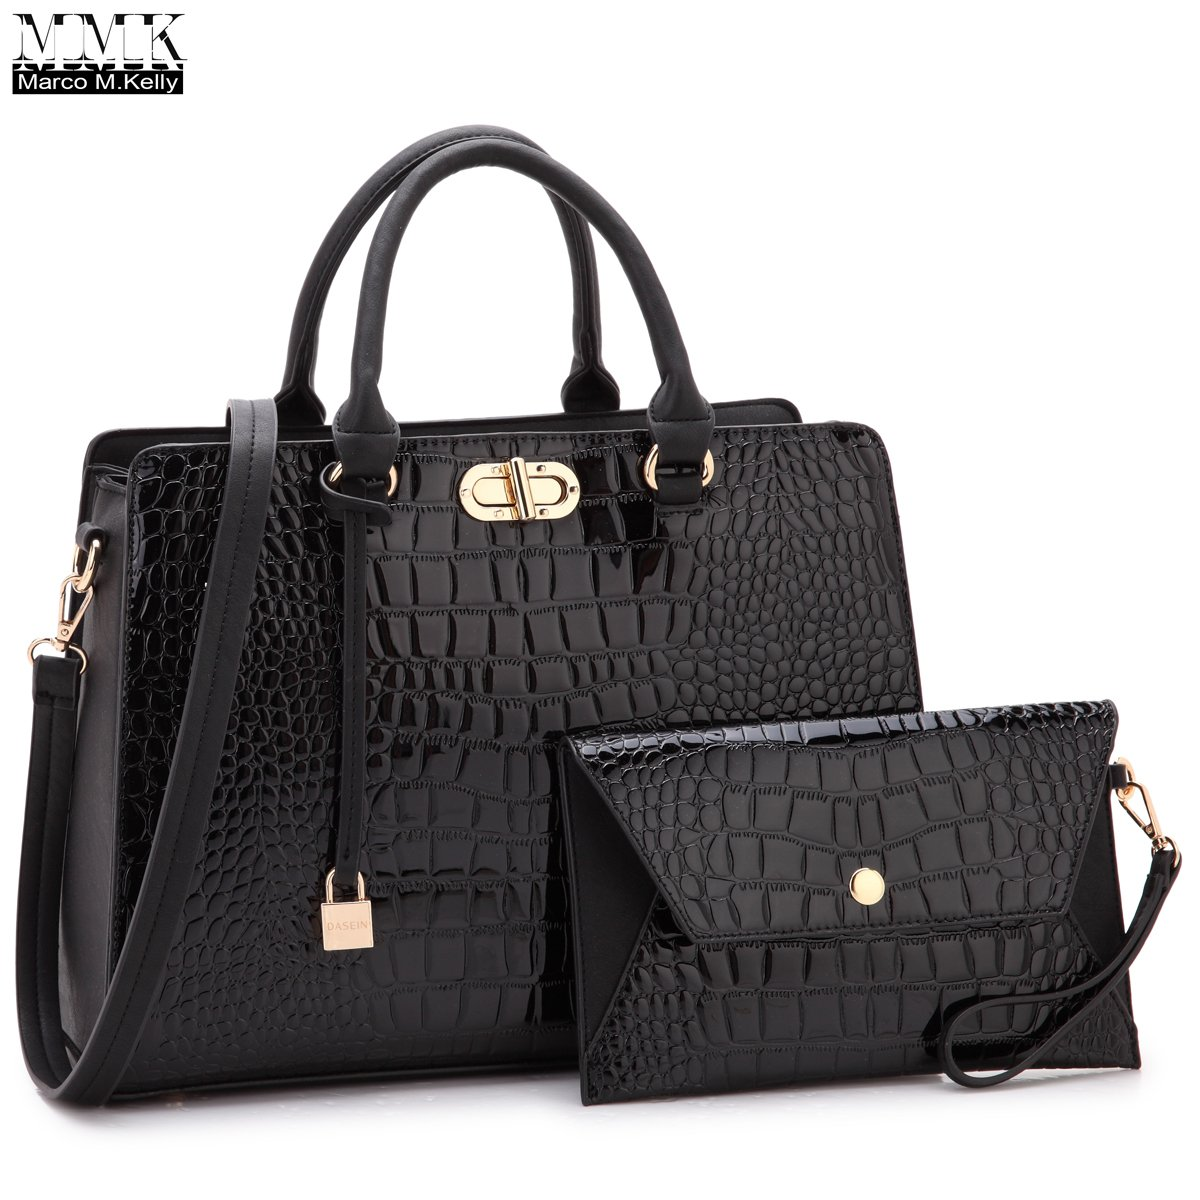 MMK Collection Fashion Stylist Handbag~Medium Size Women Satchel Handbag with Free Matching Clutches~Perfect Handbag Set for woment~Beautiful Satchel and tote handbag(7581) (MA-XL-10-7581-BK)